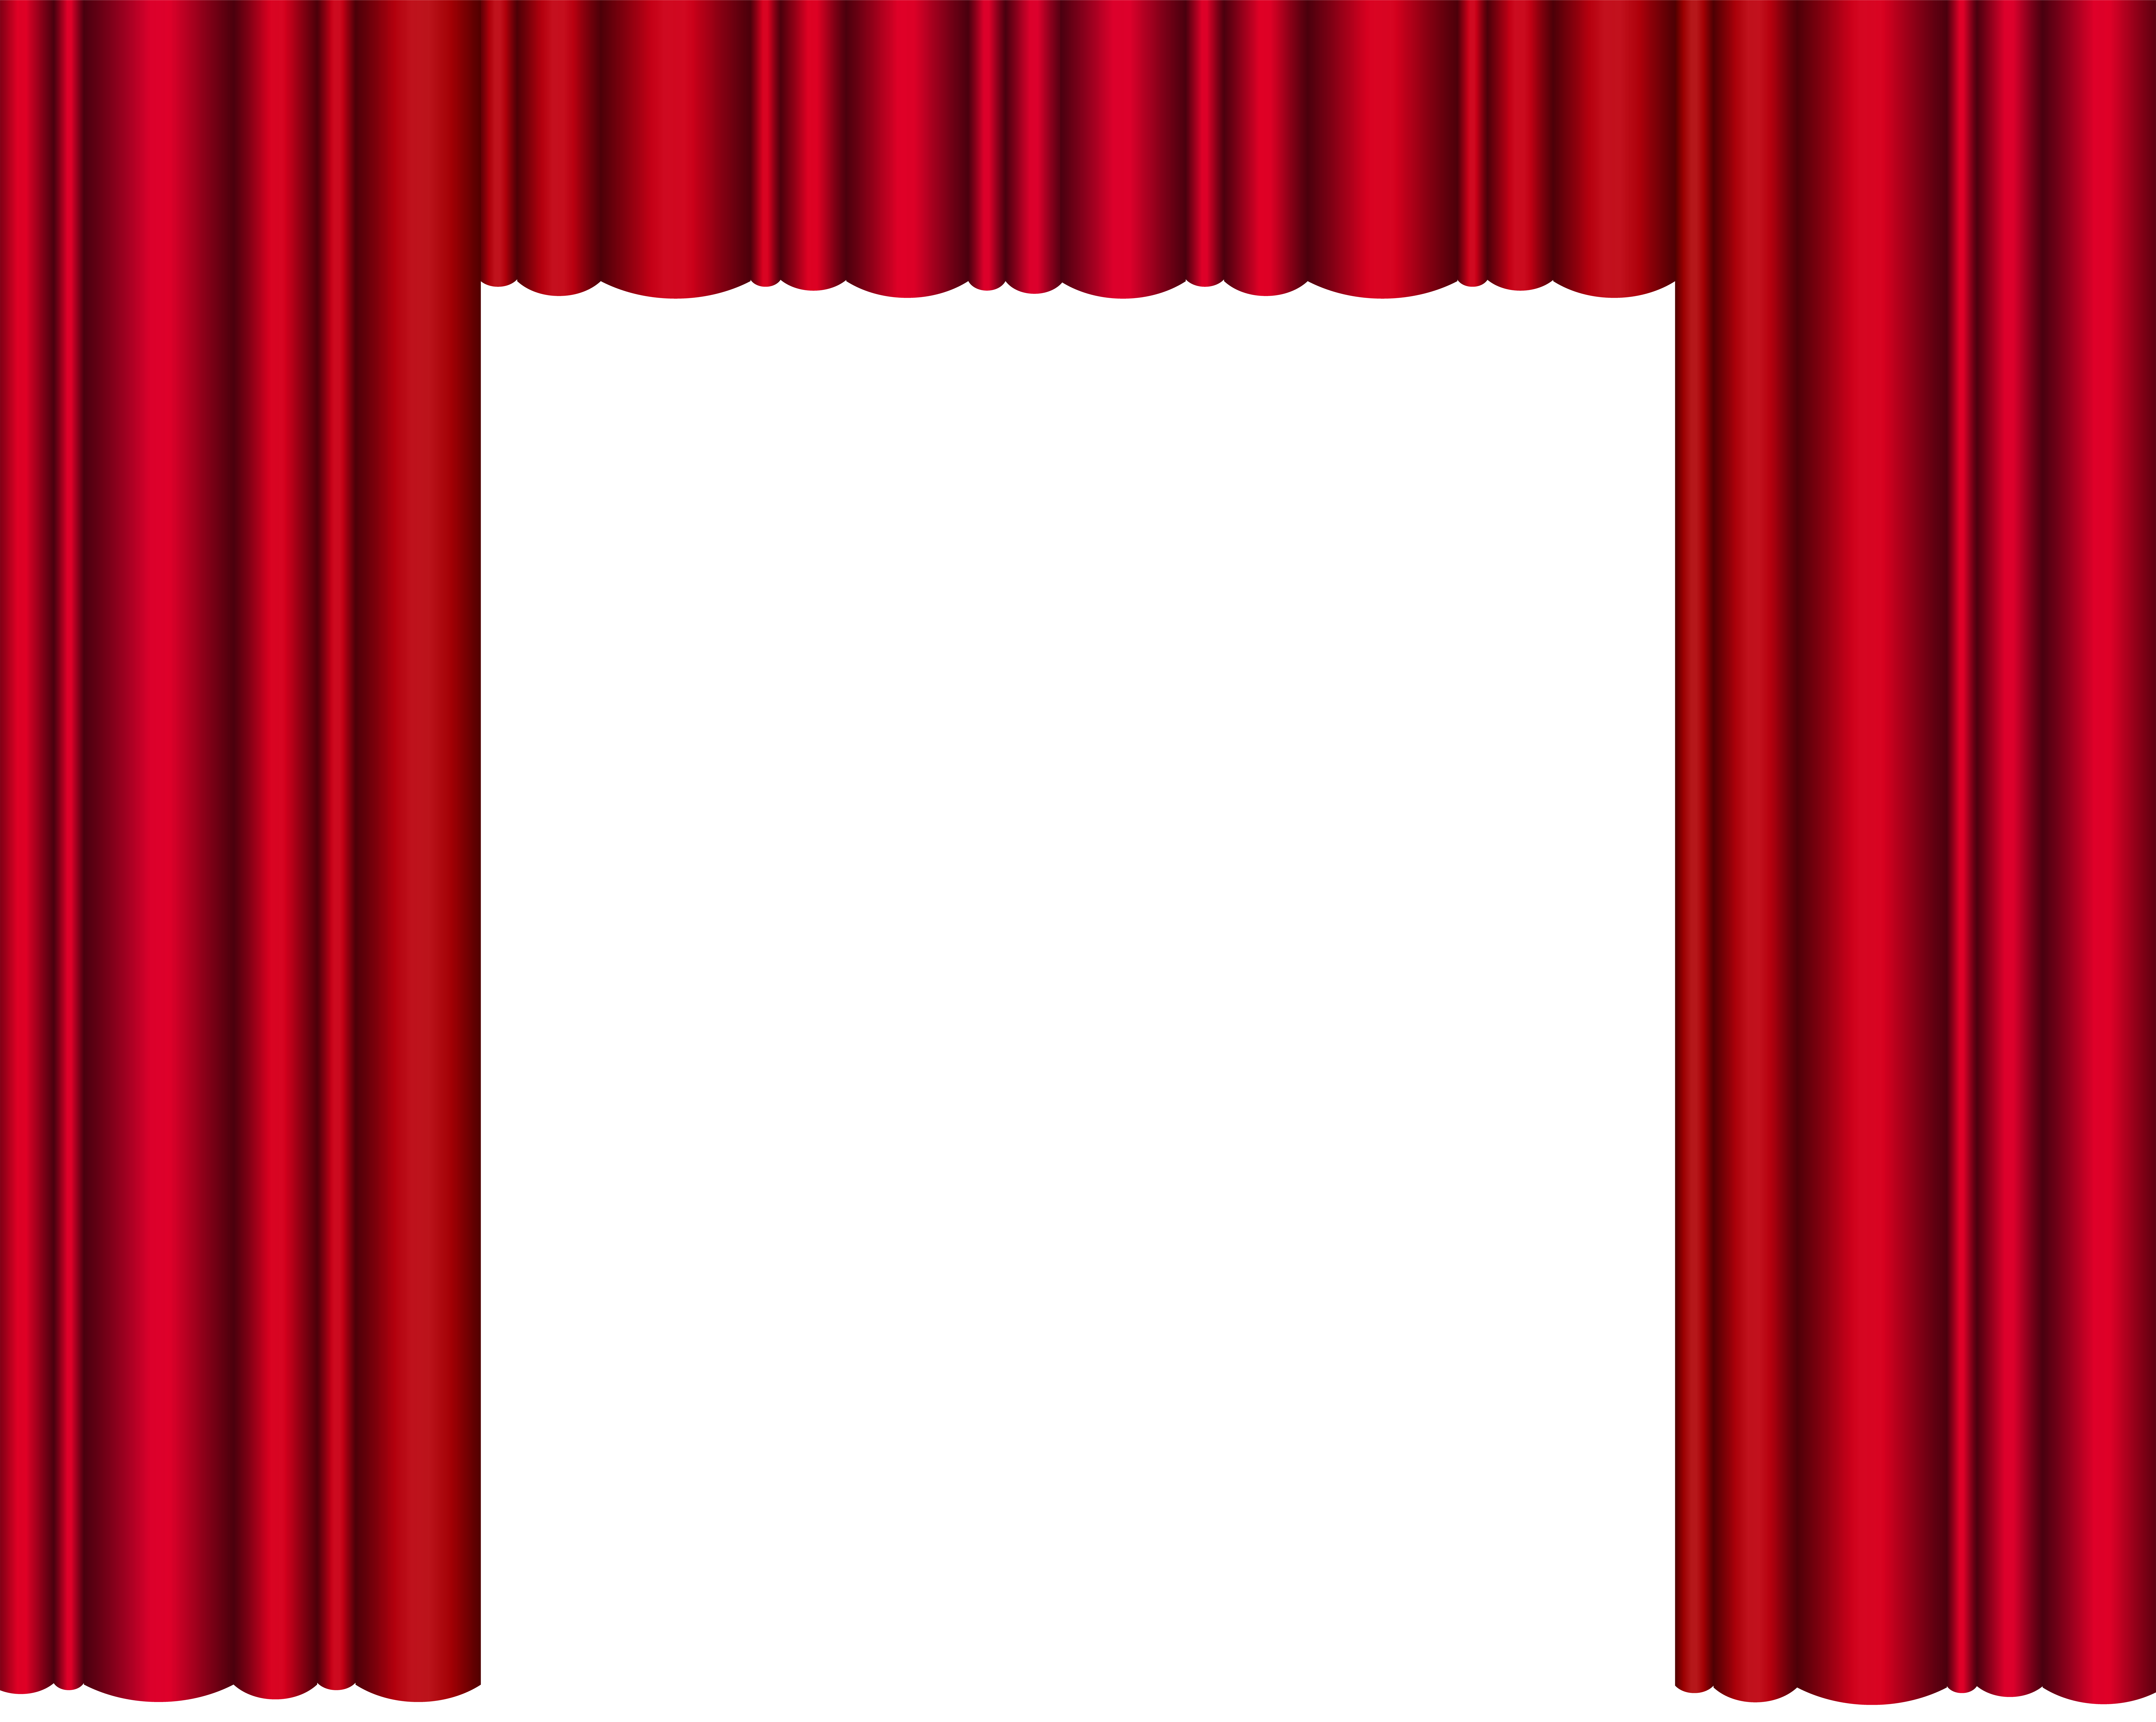 Curtain clipart theater director. Curtains gopelling net red